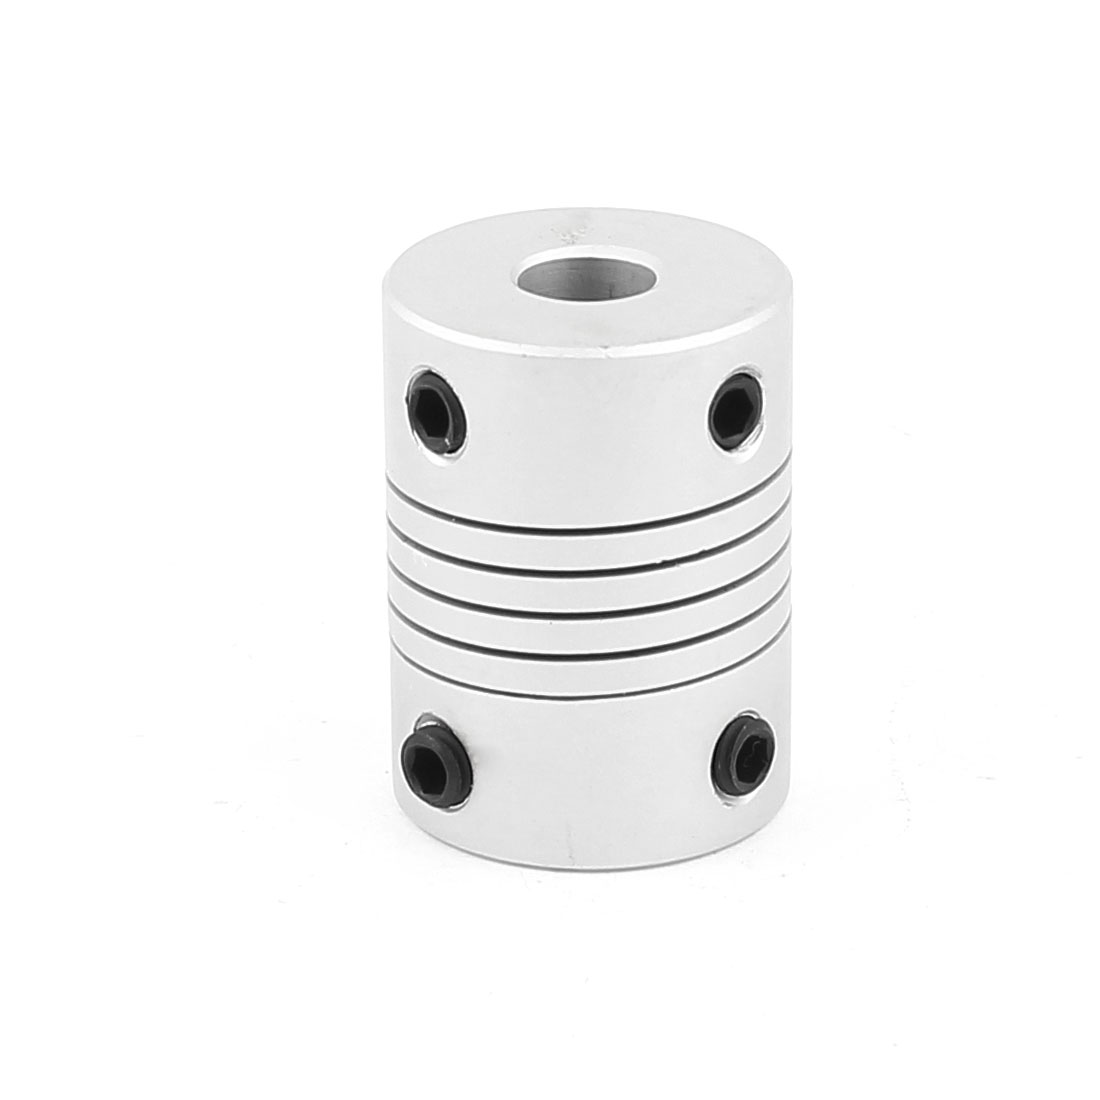 6mm to 8mm Aluminium Alloy Encode Beam Coupling Joint DIY Motor Shaft Adapter